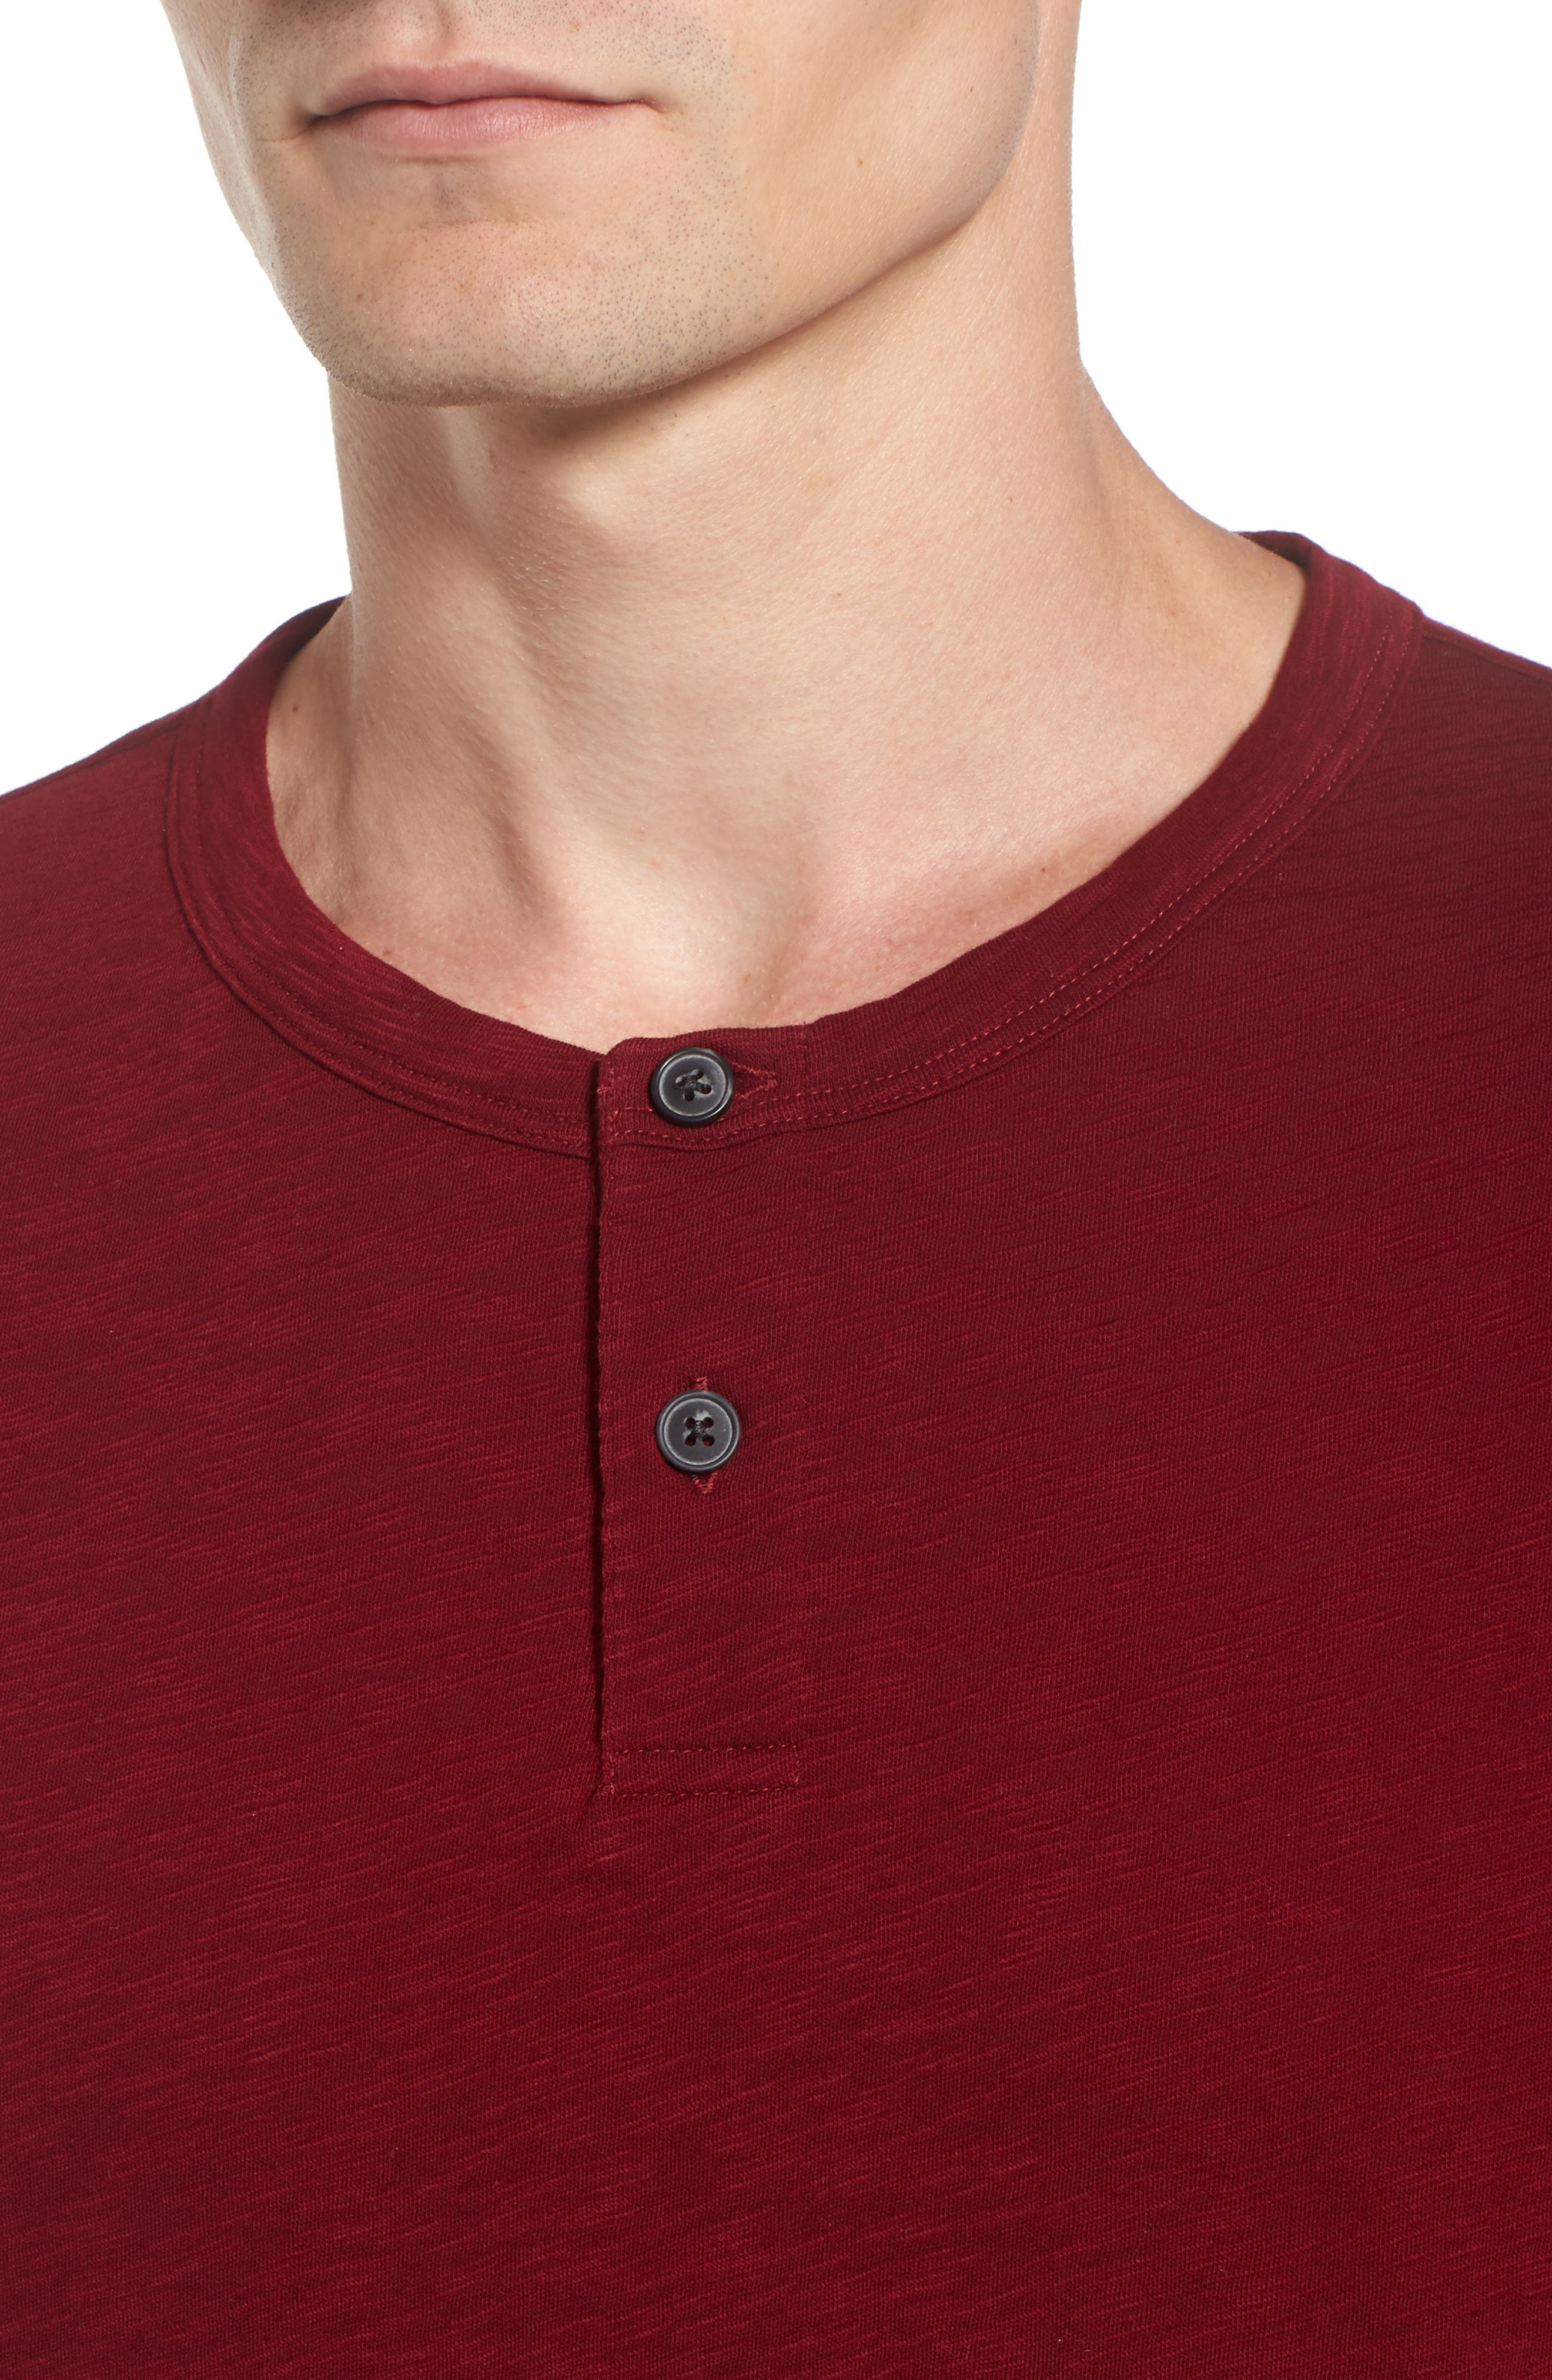 Gaskell Henley T-Shirt,                             Alternate thumbnail 23, color,